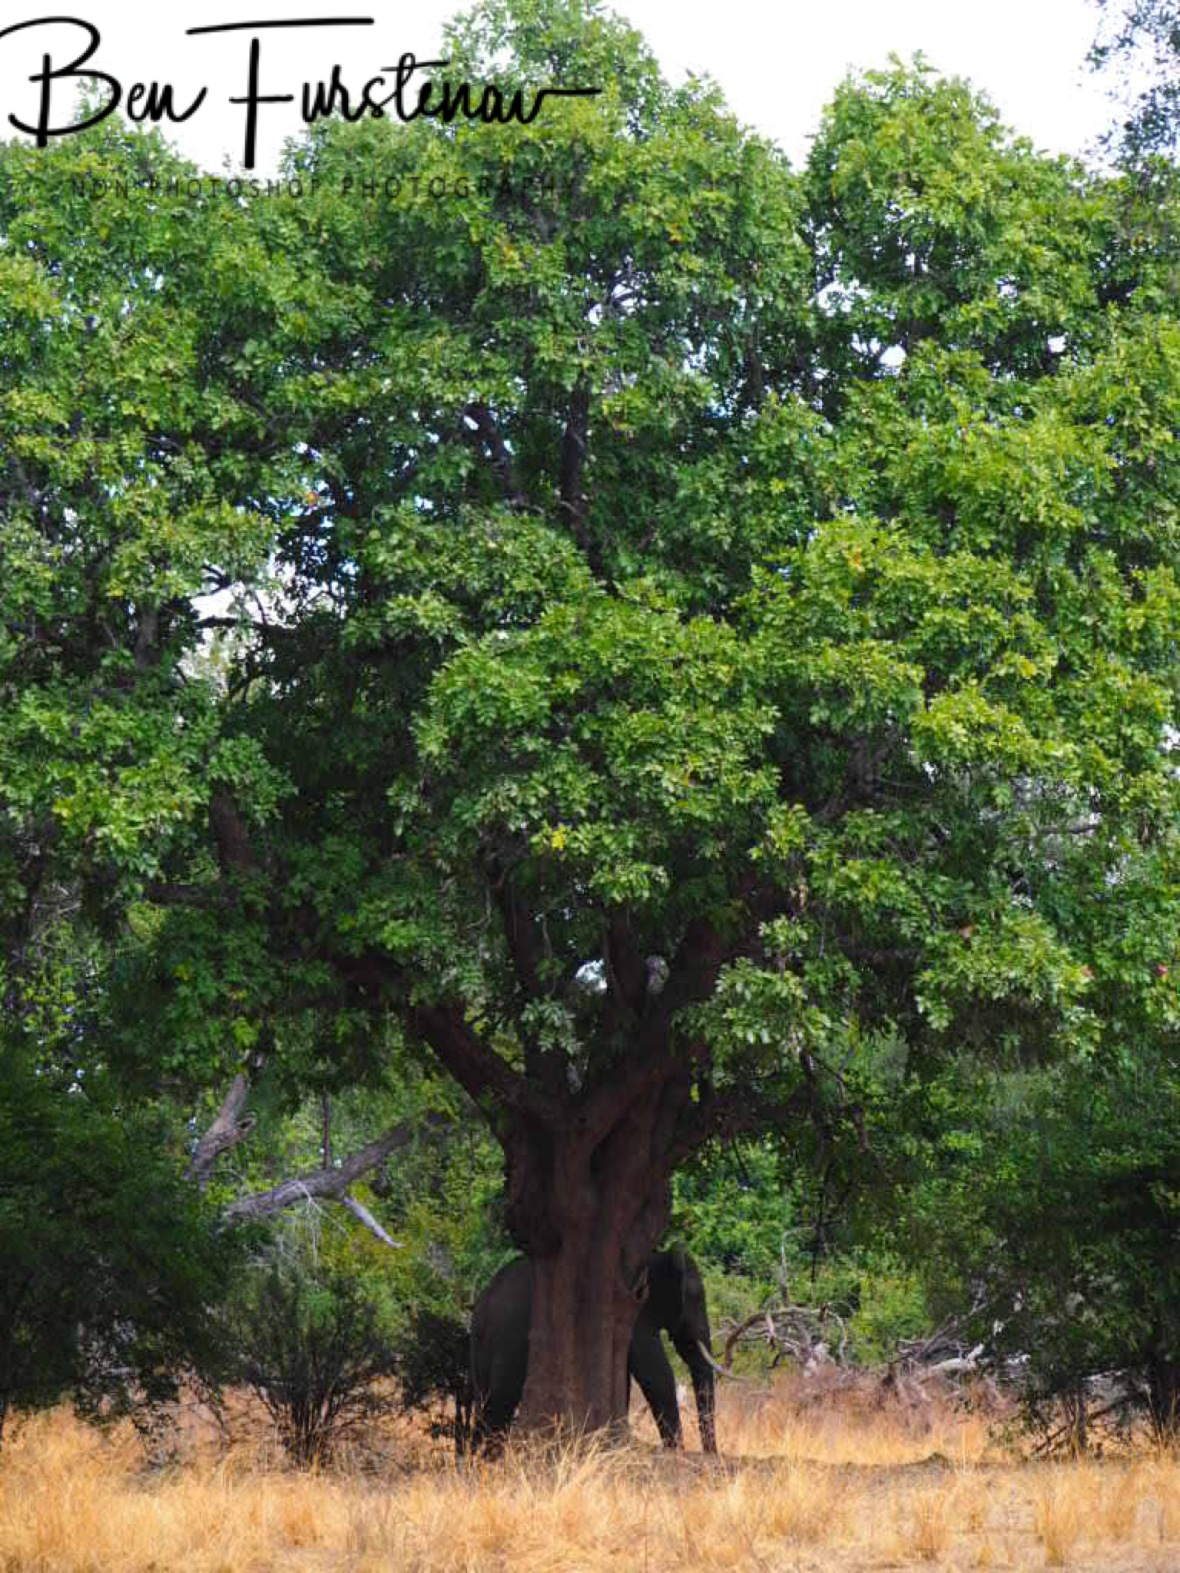 Shady tree in South Luangwa National Park, Zambia